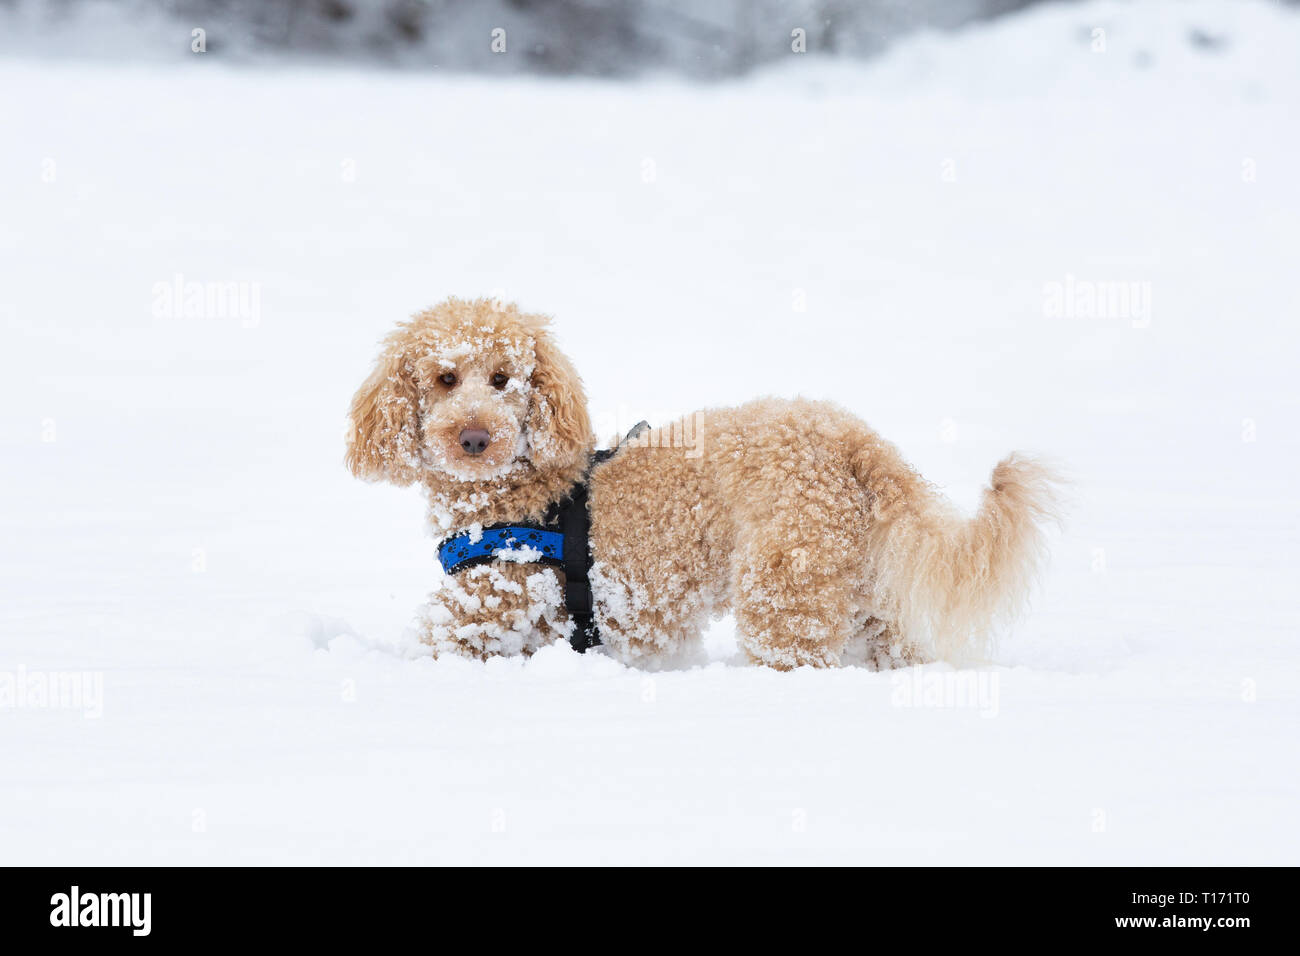 Young apricot poodle is enjoying in the snow. Cute apricot poodle standing in the snowy landscape and looking in the camera, Weissensee, Alps, Austria - Stock Image